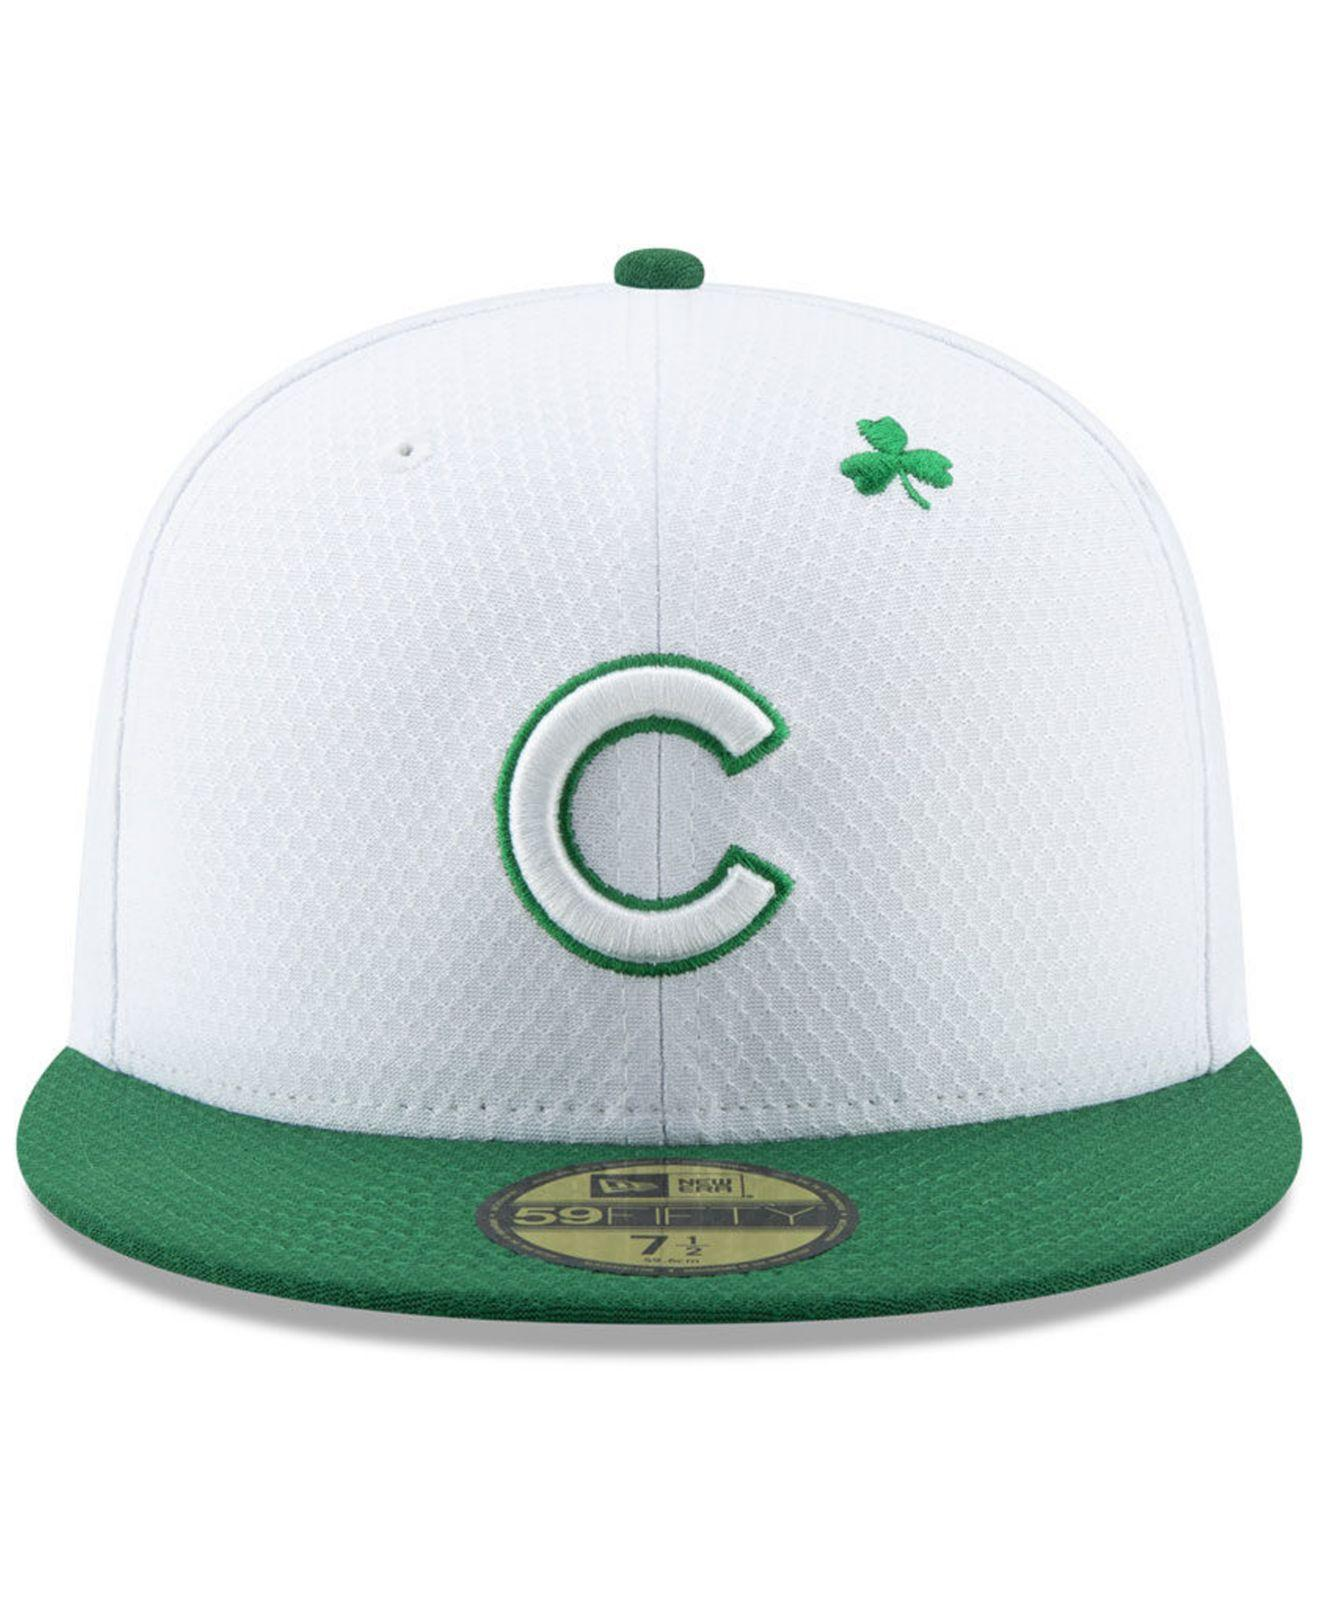 b21ea57c86f Lyst - KTZ Chicago Cubs St. Pattys Day 59fifty-fitted Cap in White for Men